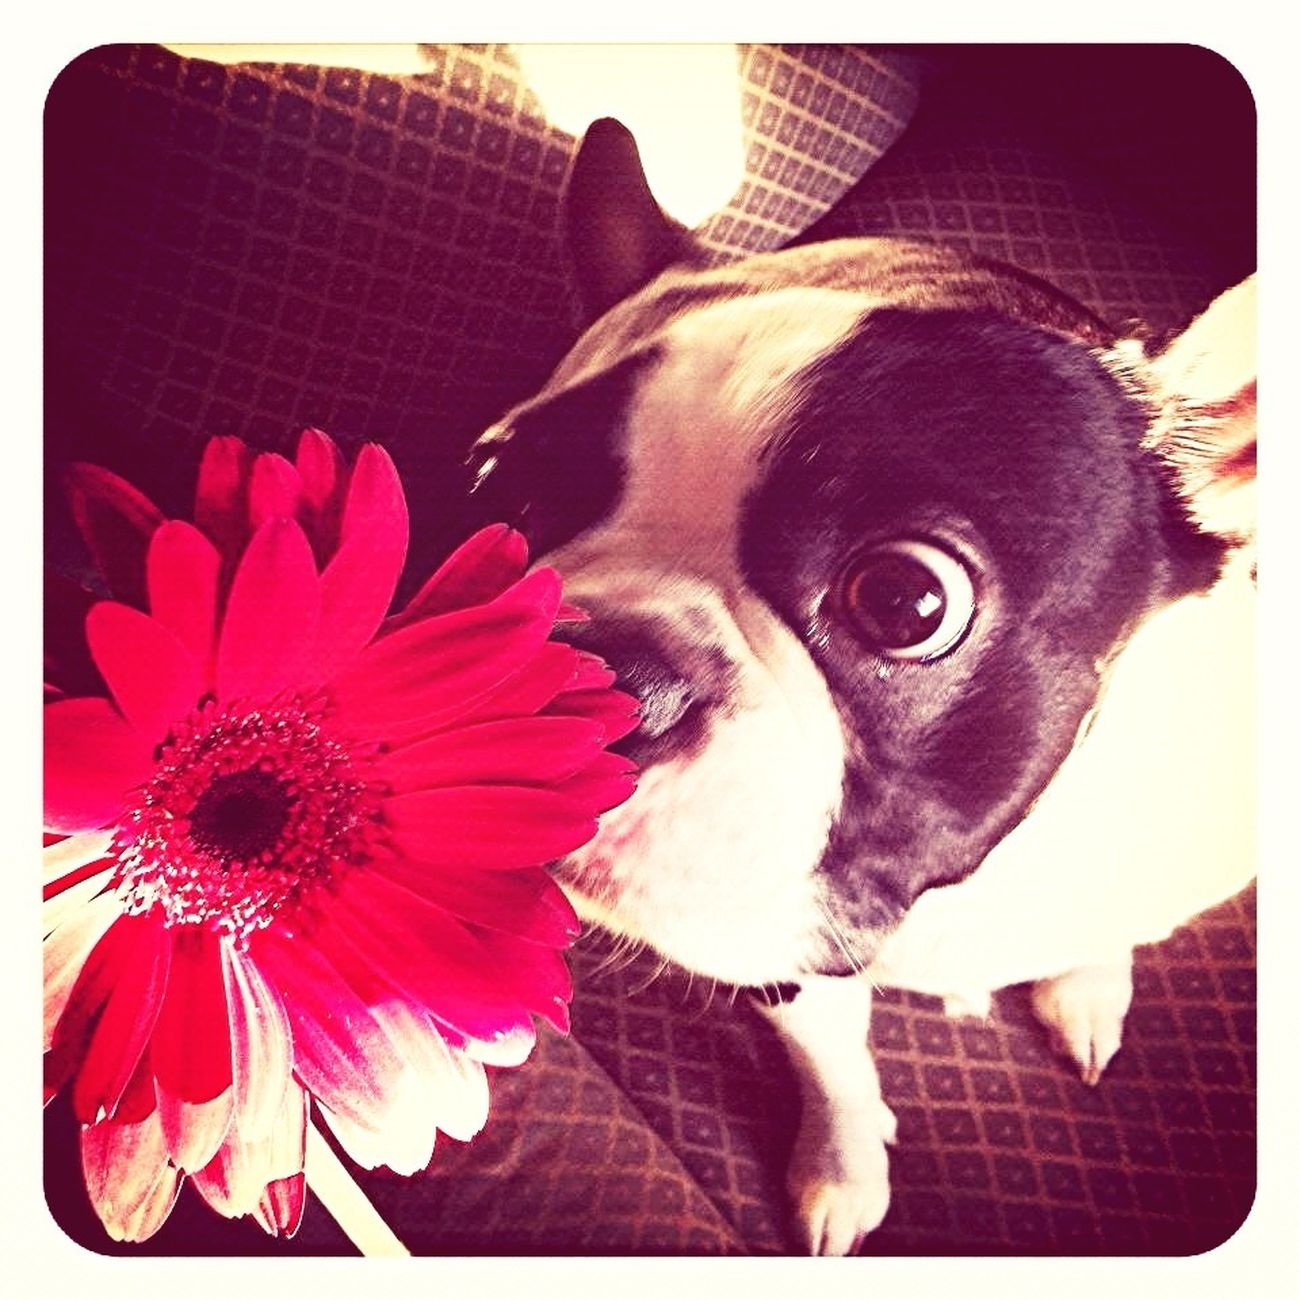 Boston Terrier, Cute, Pet, Best Friend